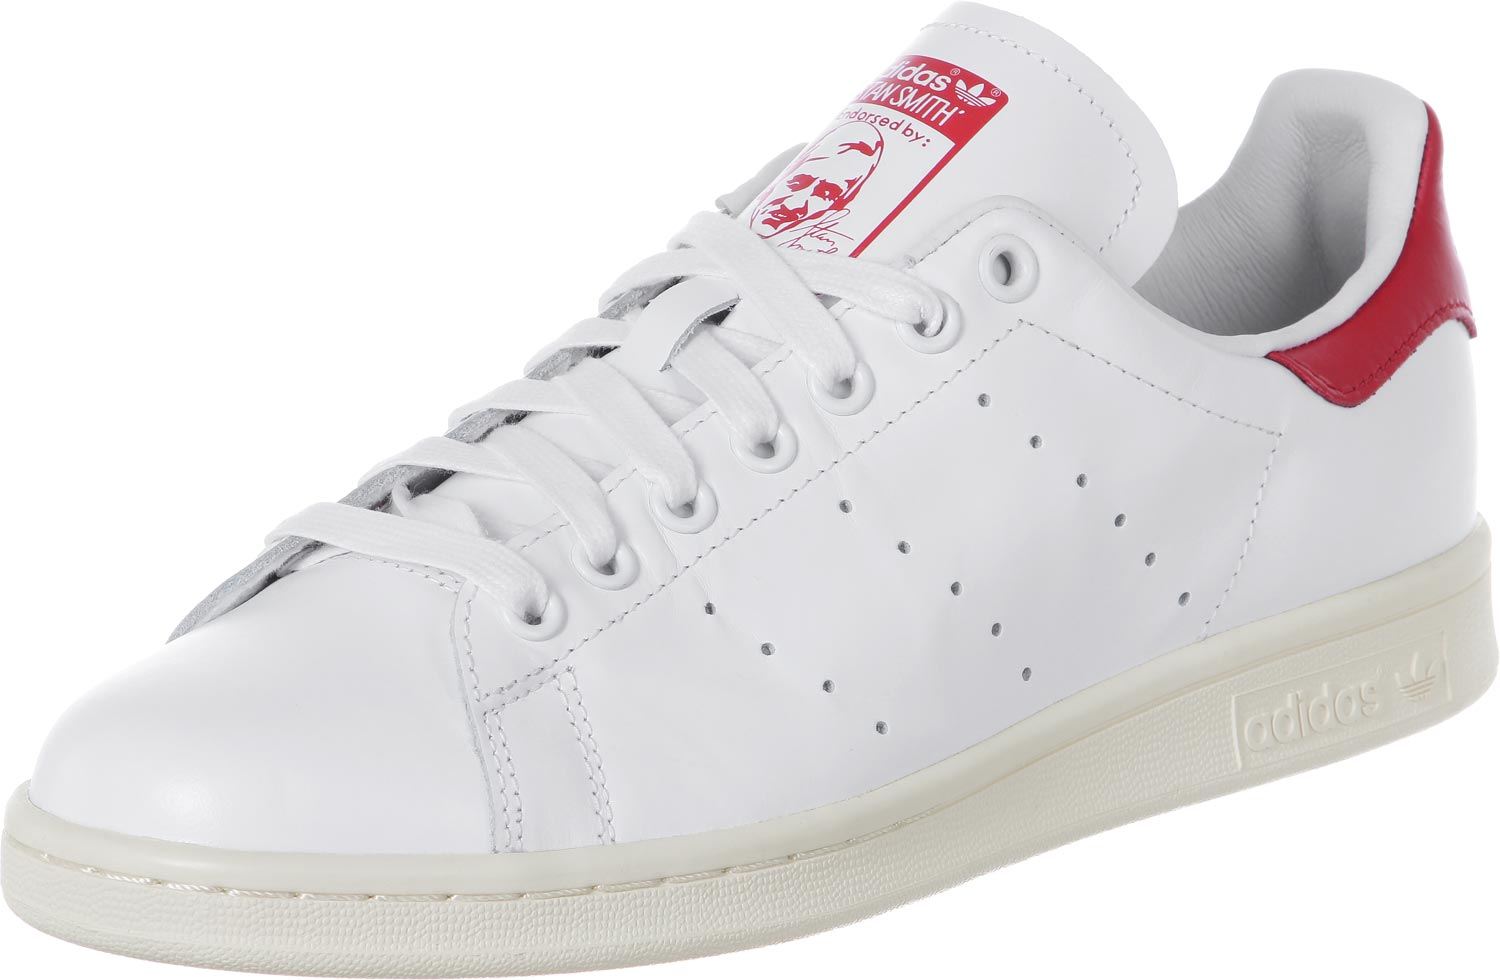 adidas stan smith shoes white red. Black Bedroom Furniture Sets. Home Design Ideas